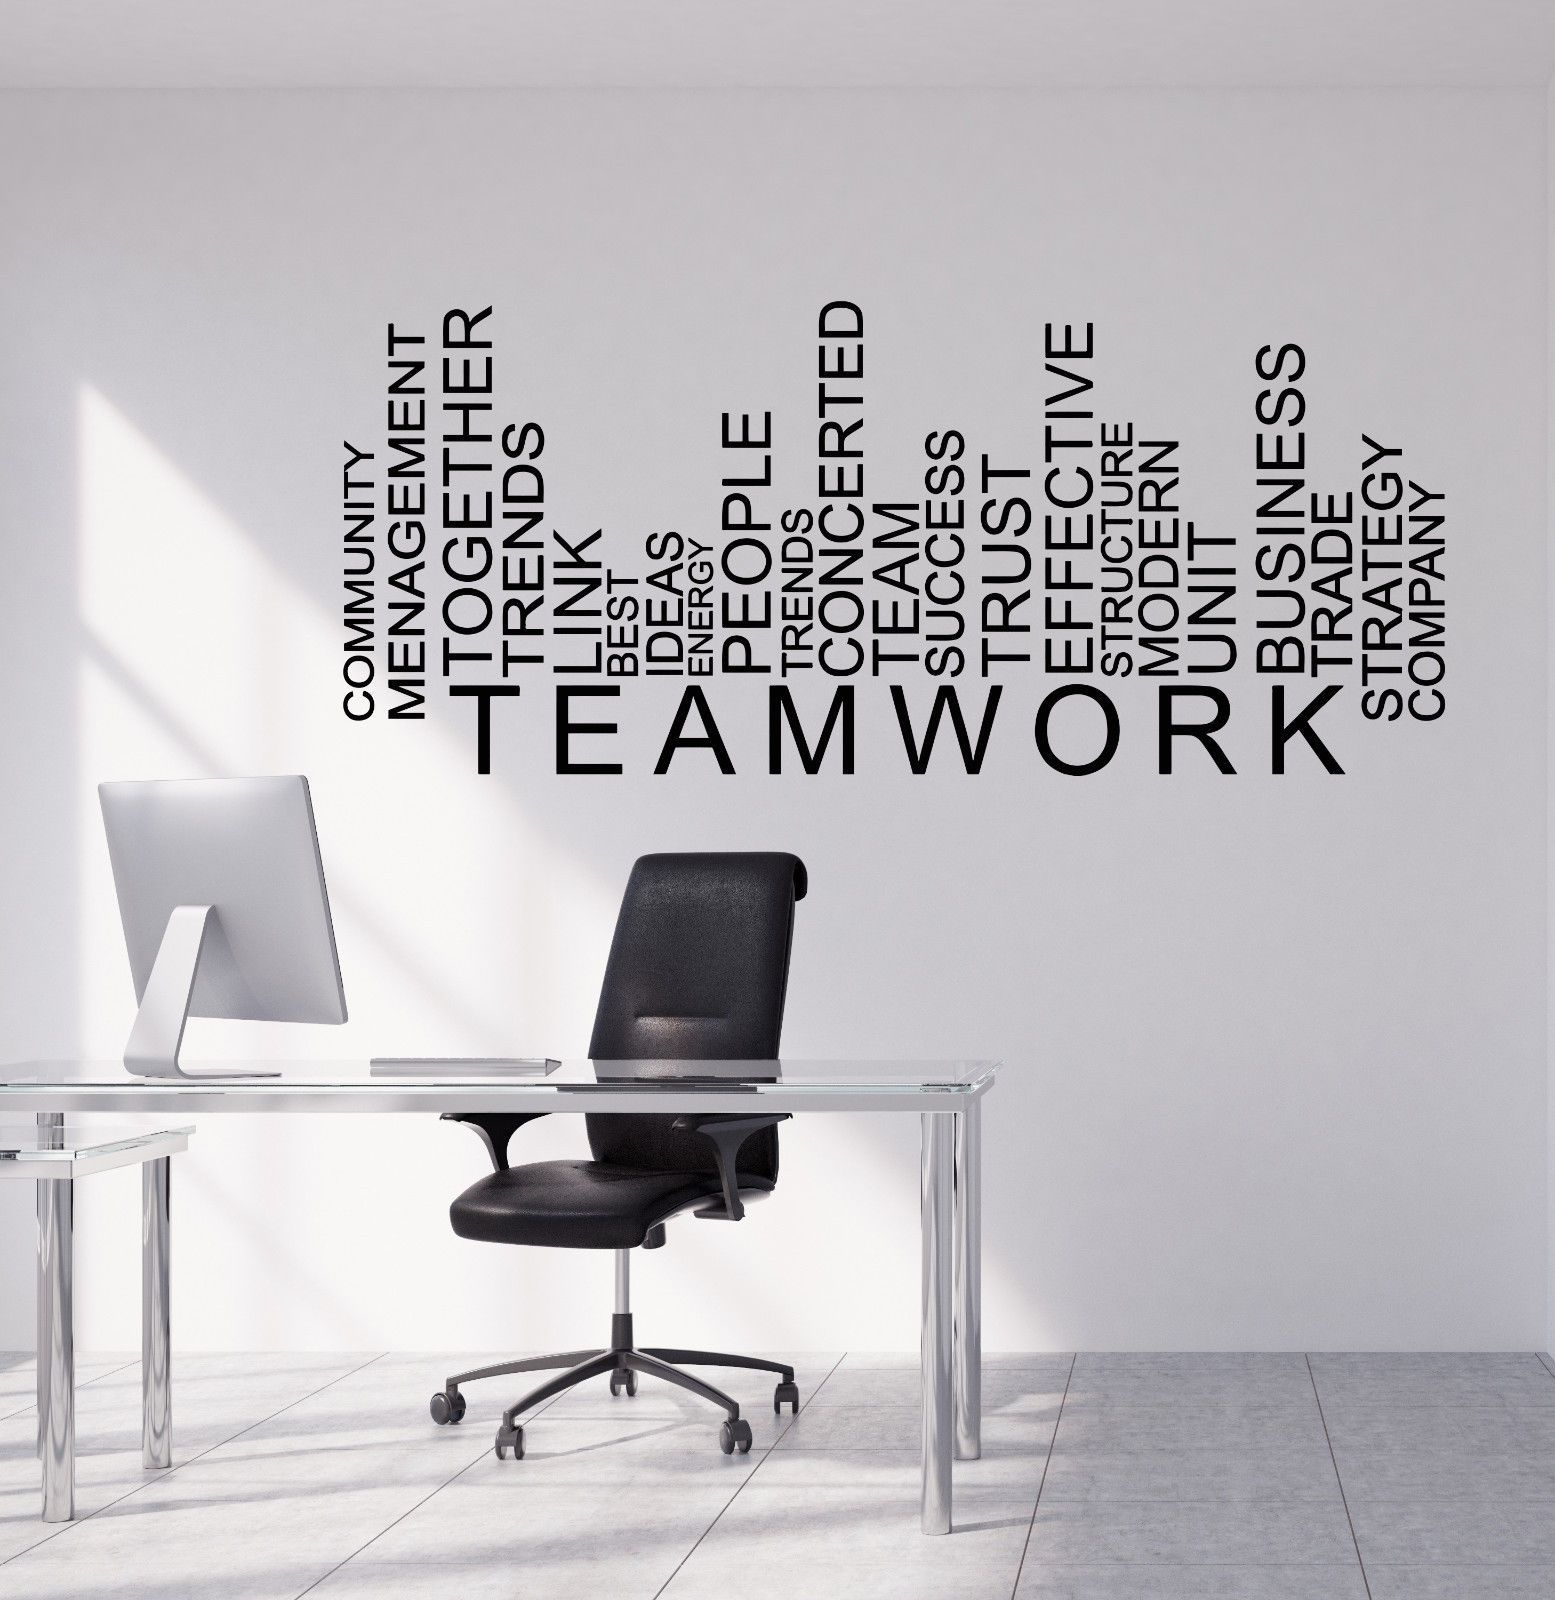 Vinyl Wall Decal Teamwork Words Business Office Decor Stickers 1609ig Office Wall Design Business Office Decor Office Wall Graphics